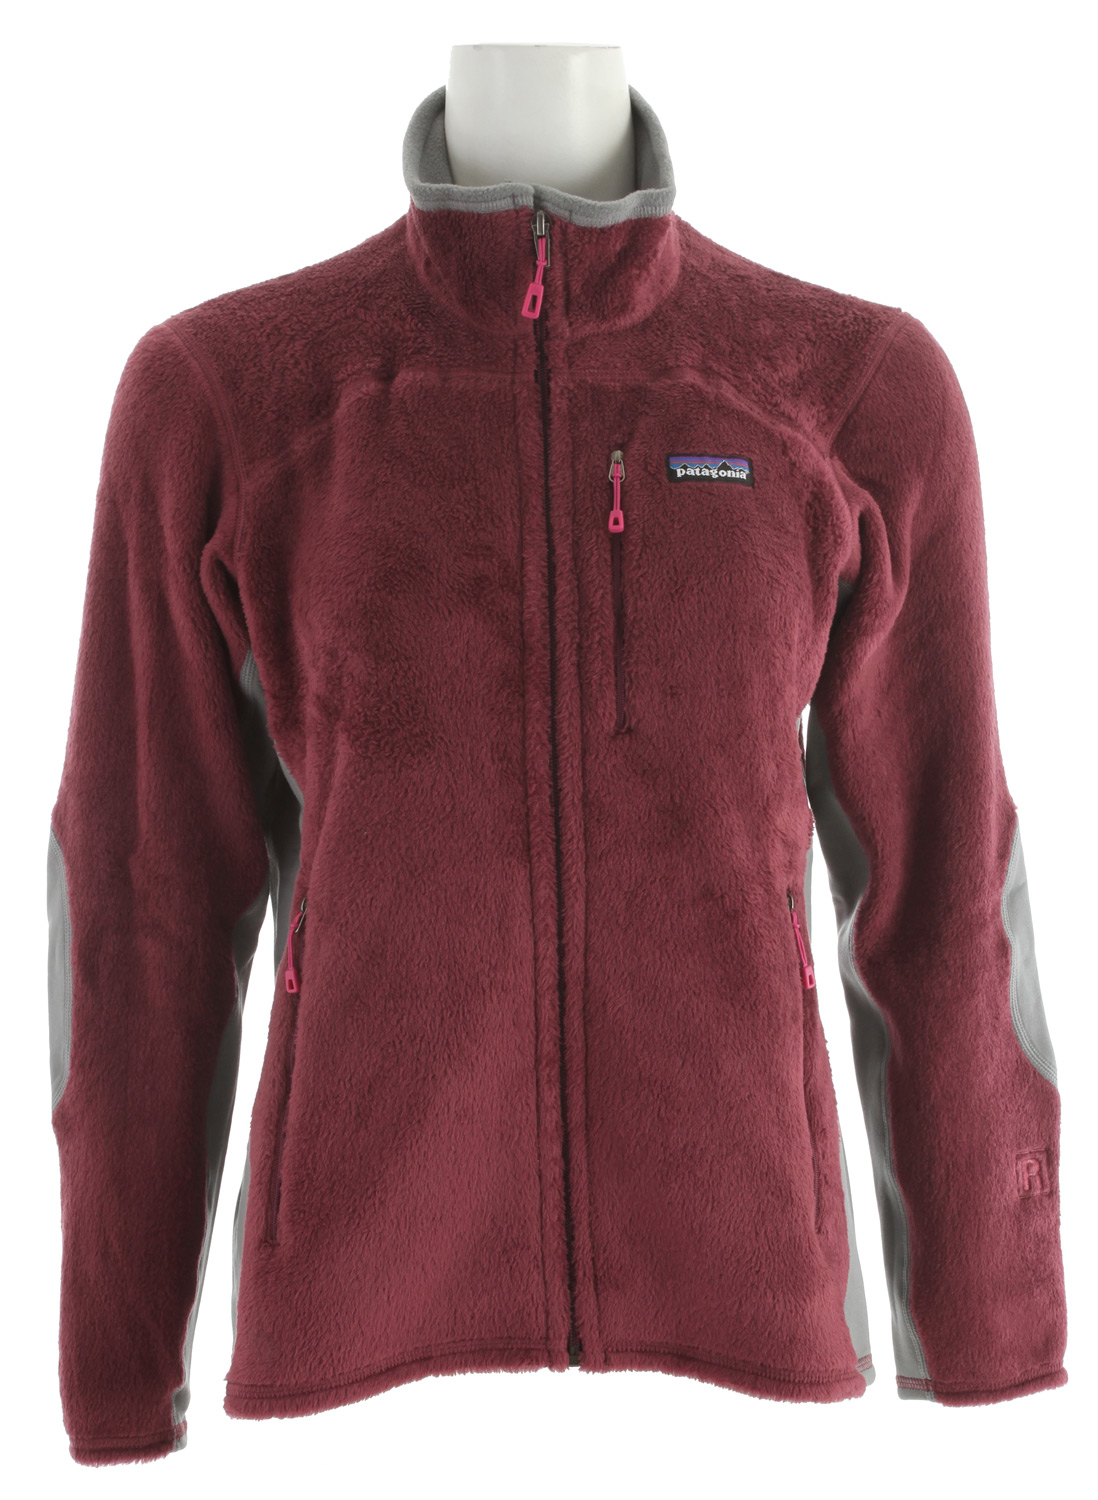 Patagonia R2 Jacket Light Balsamic - $103.95